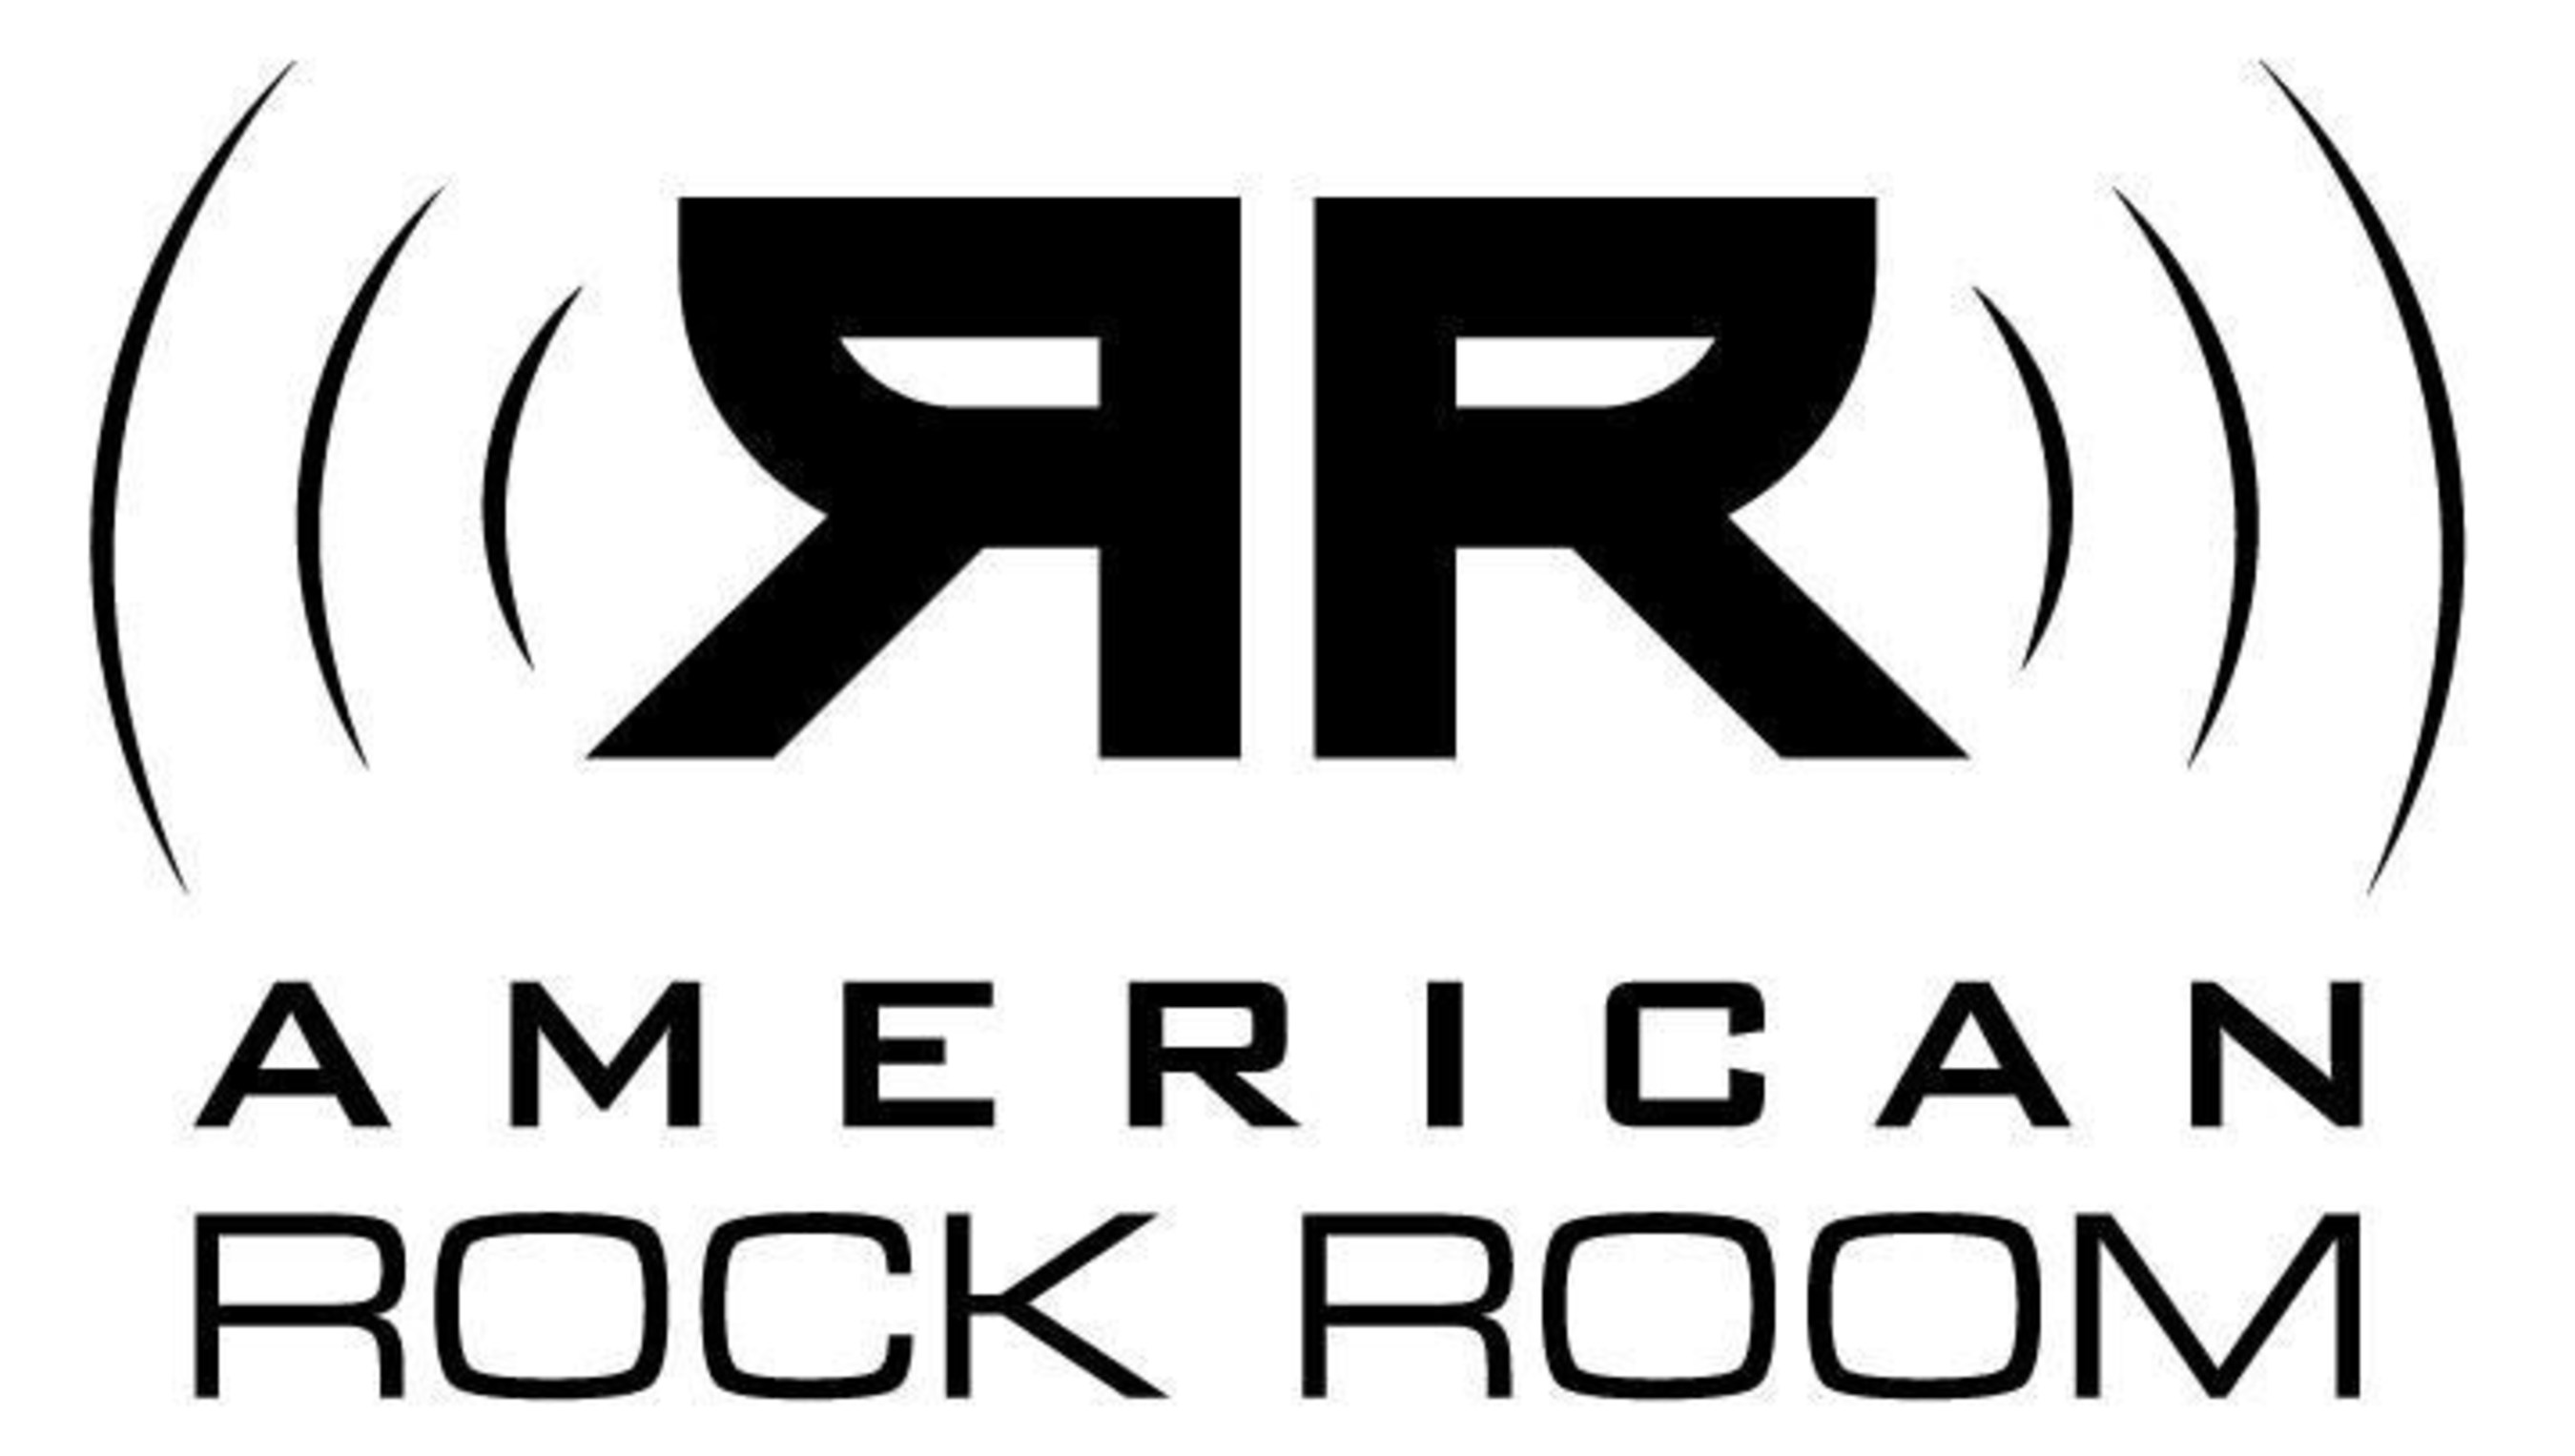 American Rock Room to Debut Natural Finish Americano Coffee Table Amp at 2016 NAMM